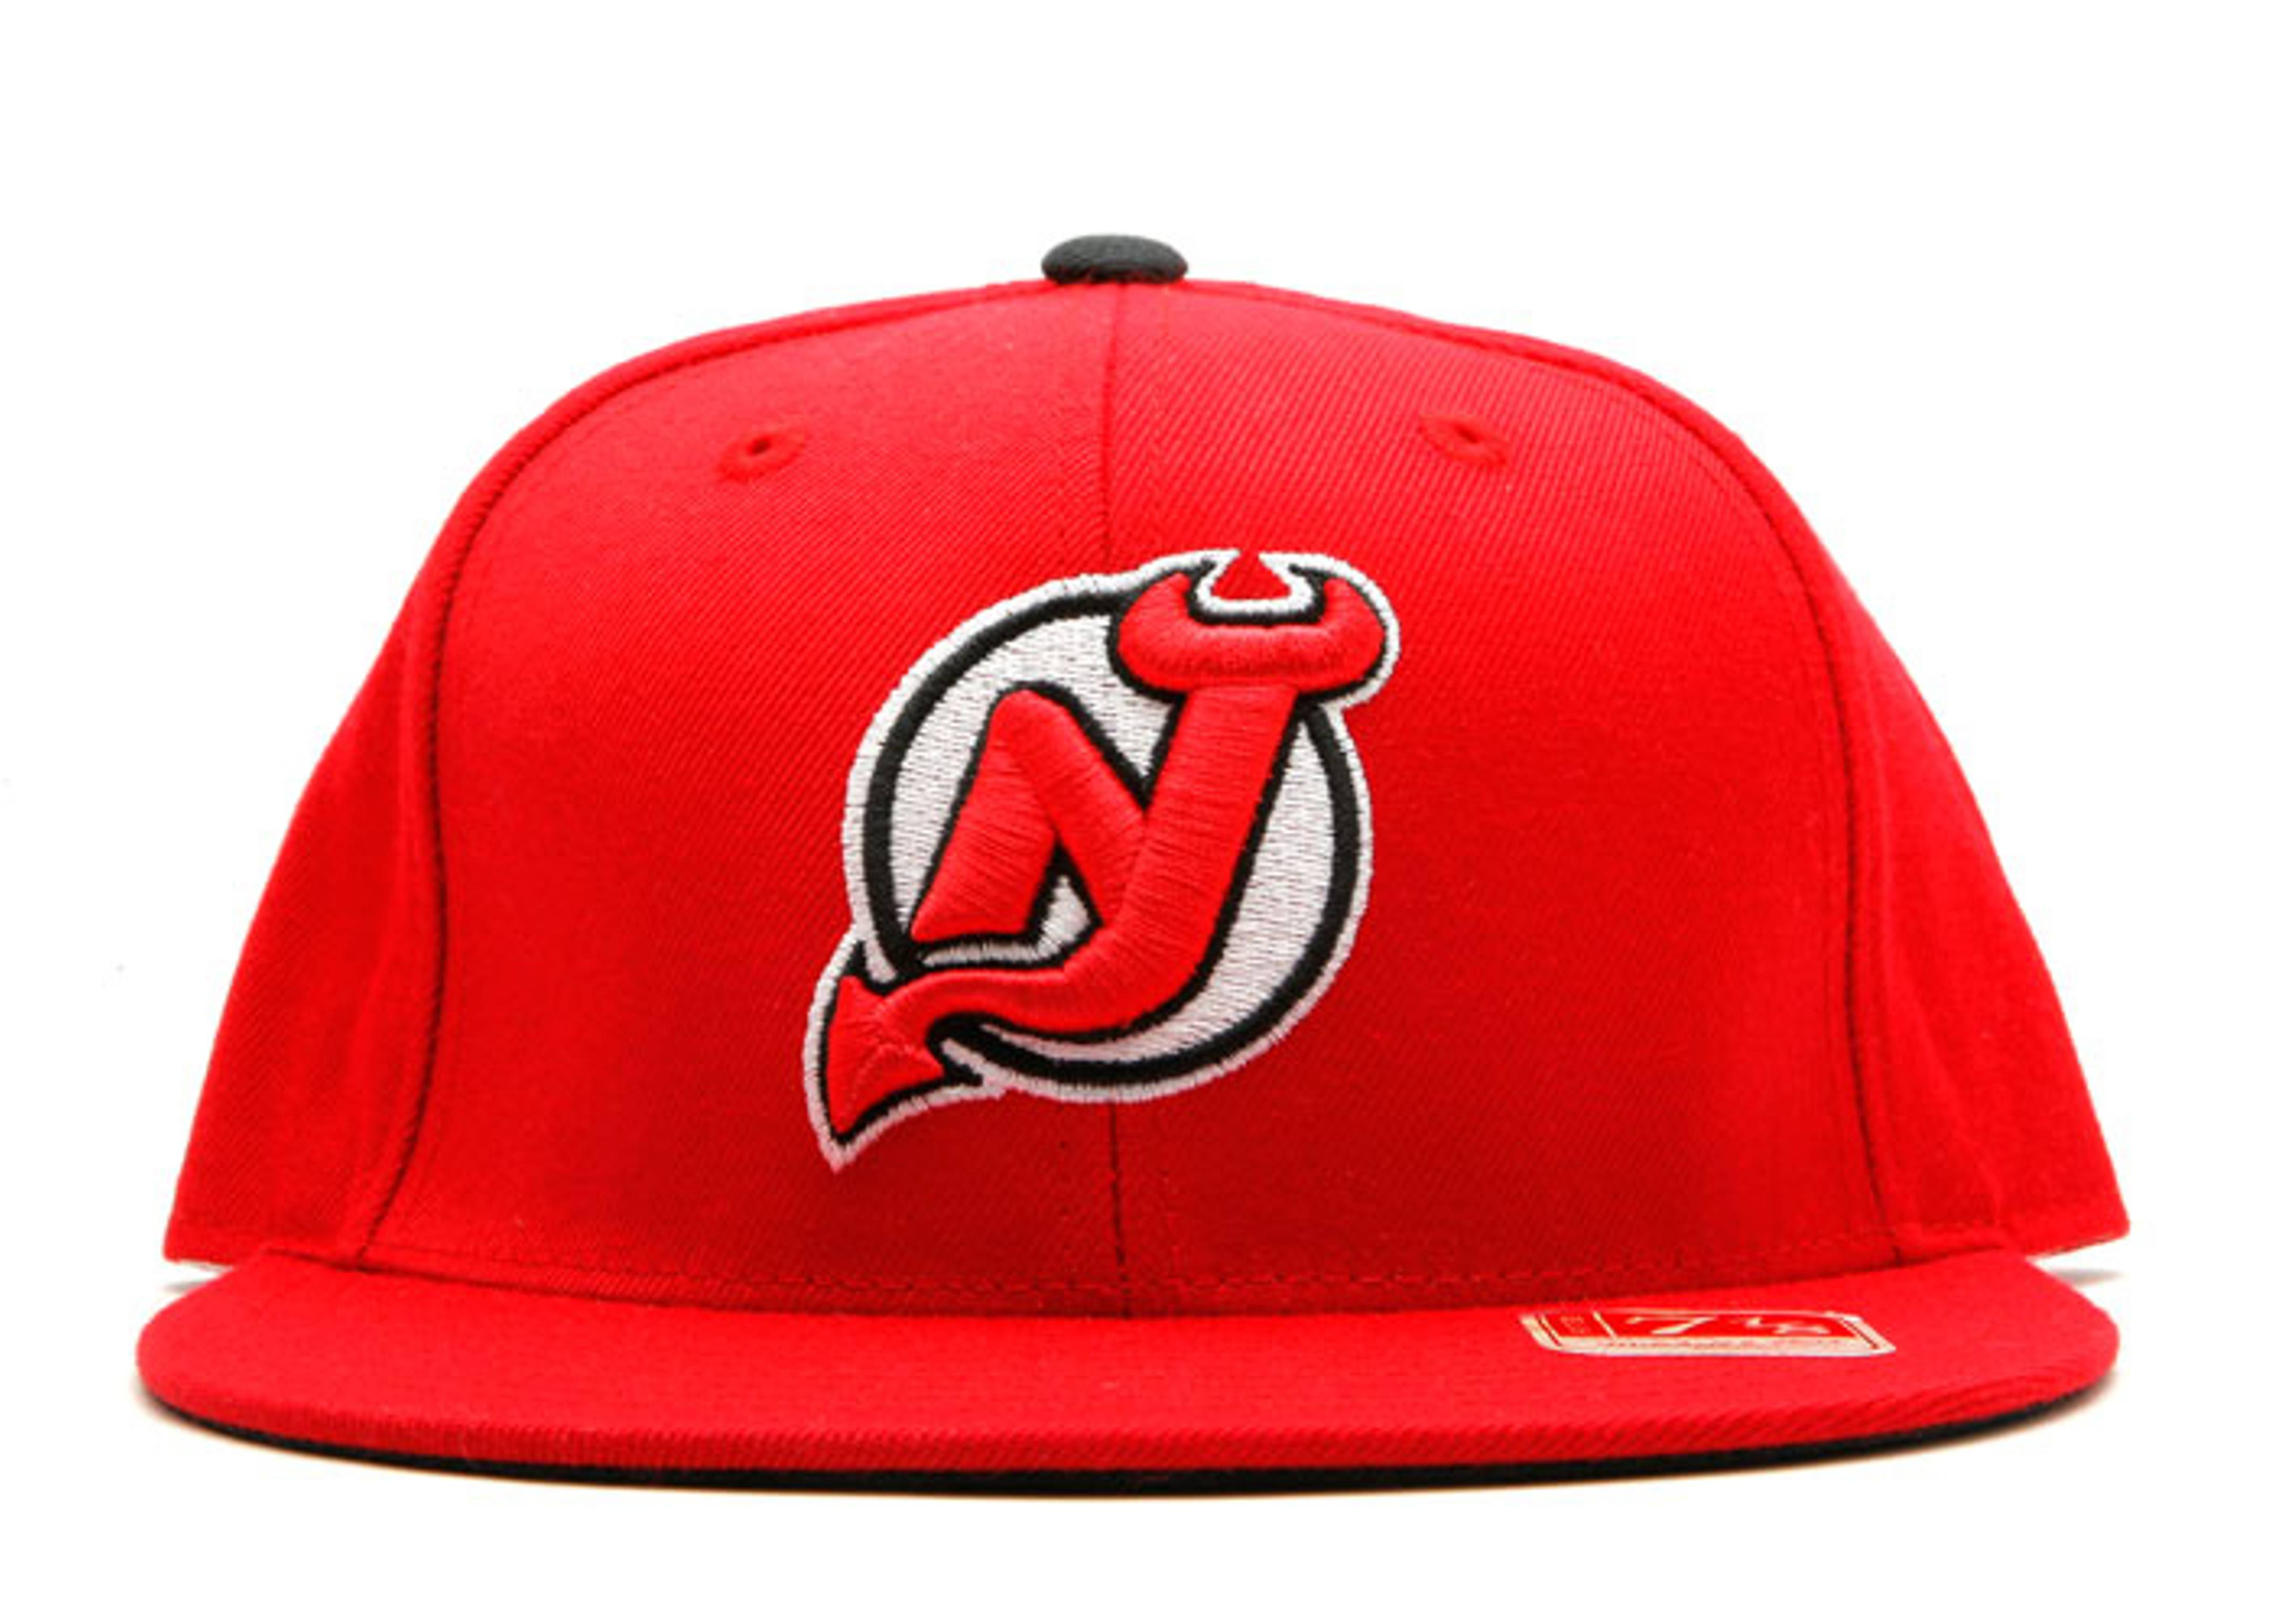 new jersey devils fitted